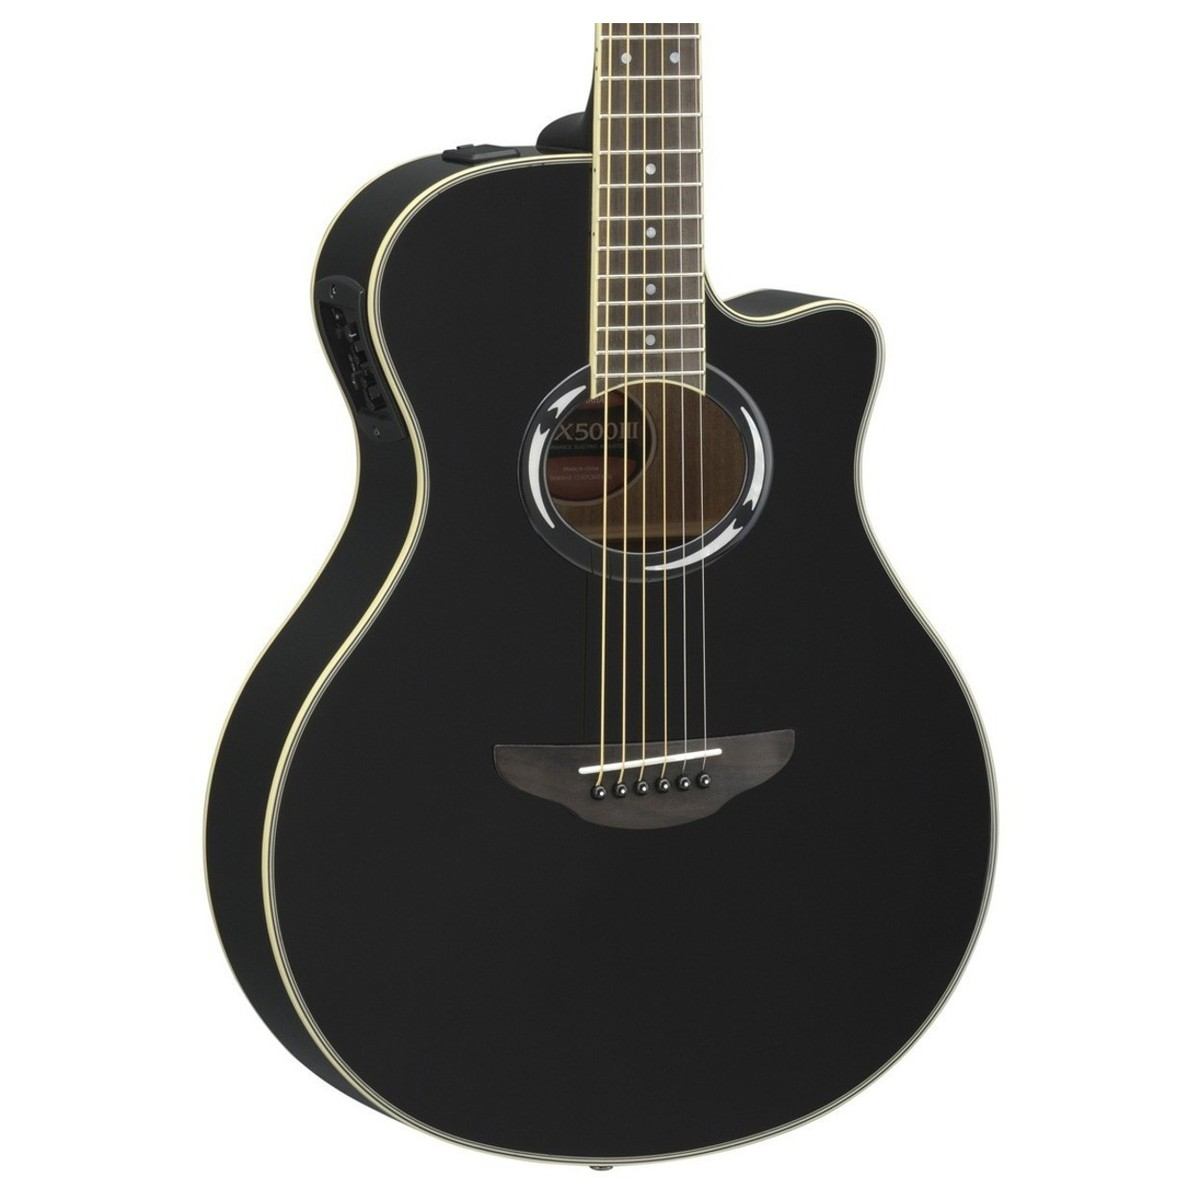 Disc Yamaha Apx500 Iii Electro Acoustic Guitar Black At Gear4music